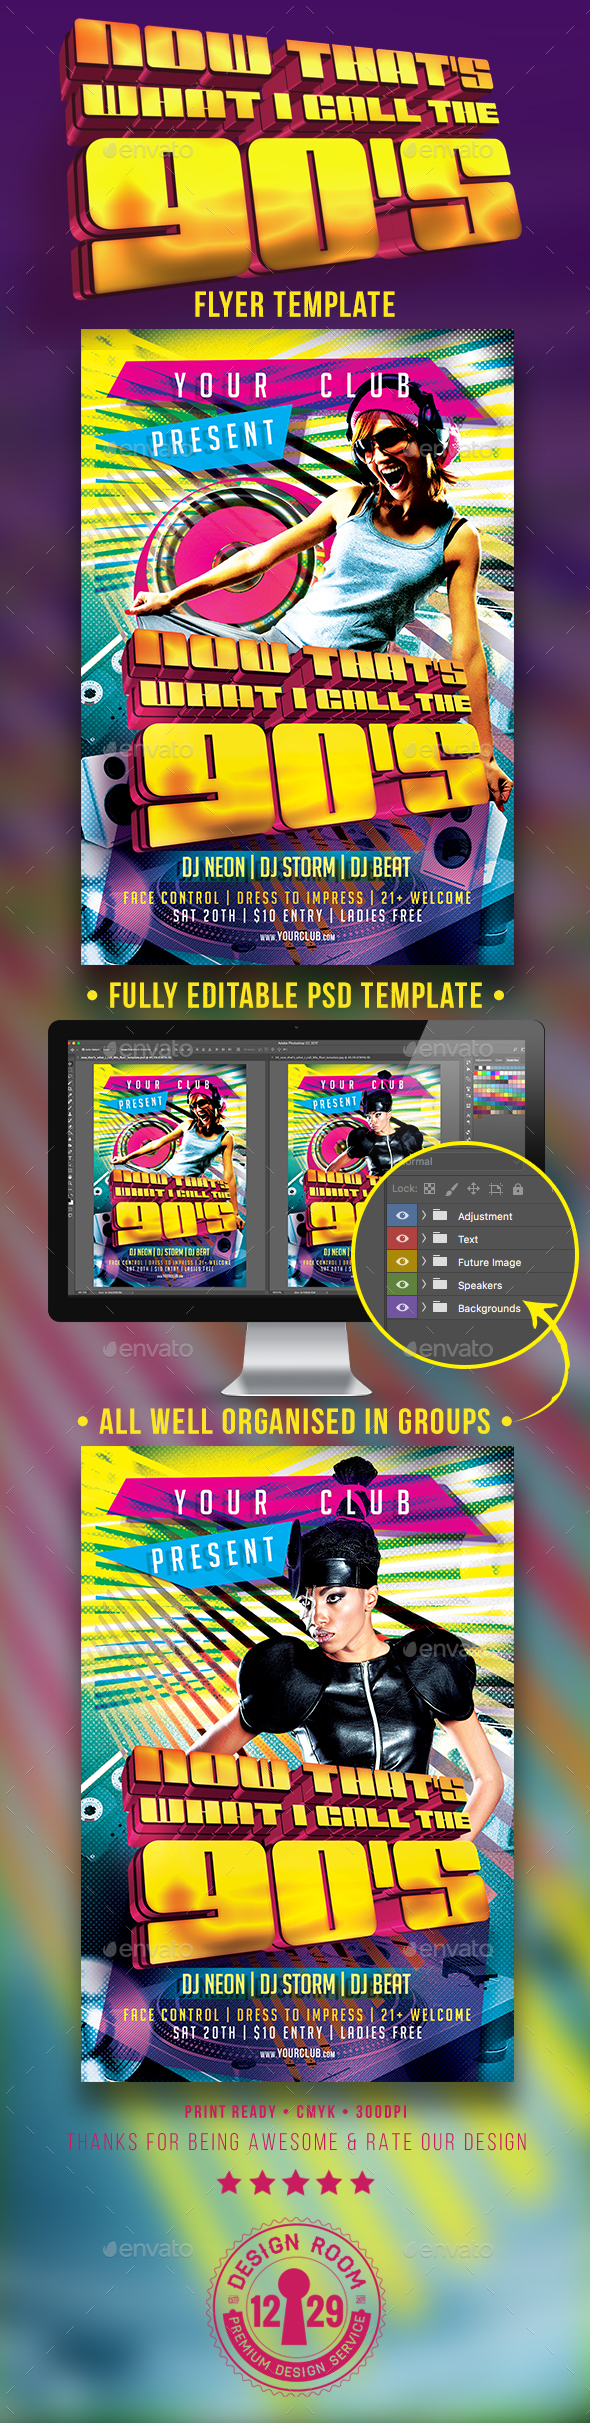 Now That's What I Call The 90's Flyer Template - Clubs & Parties Events